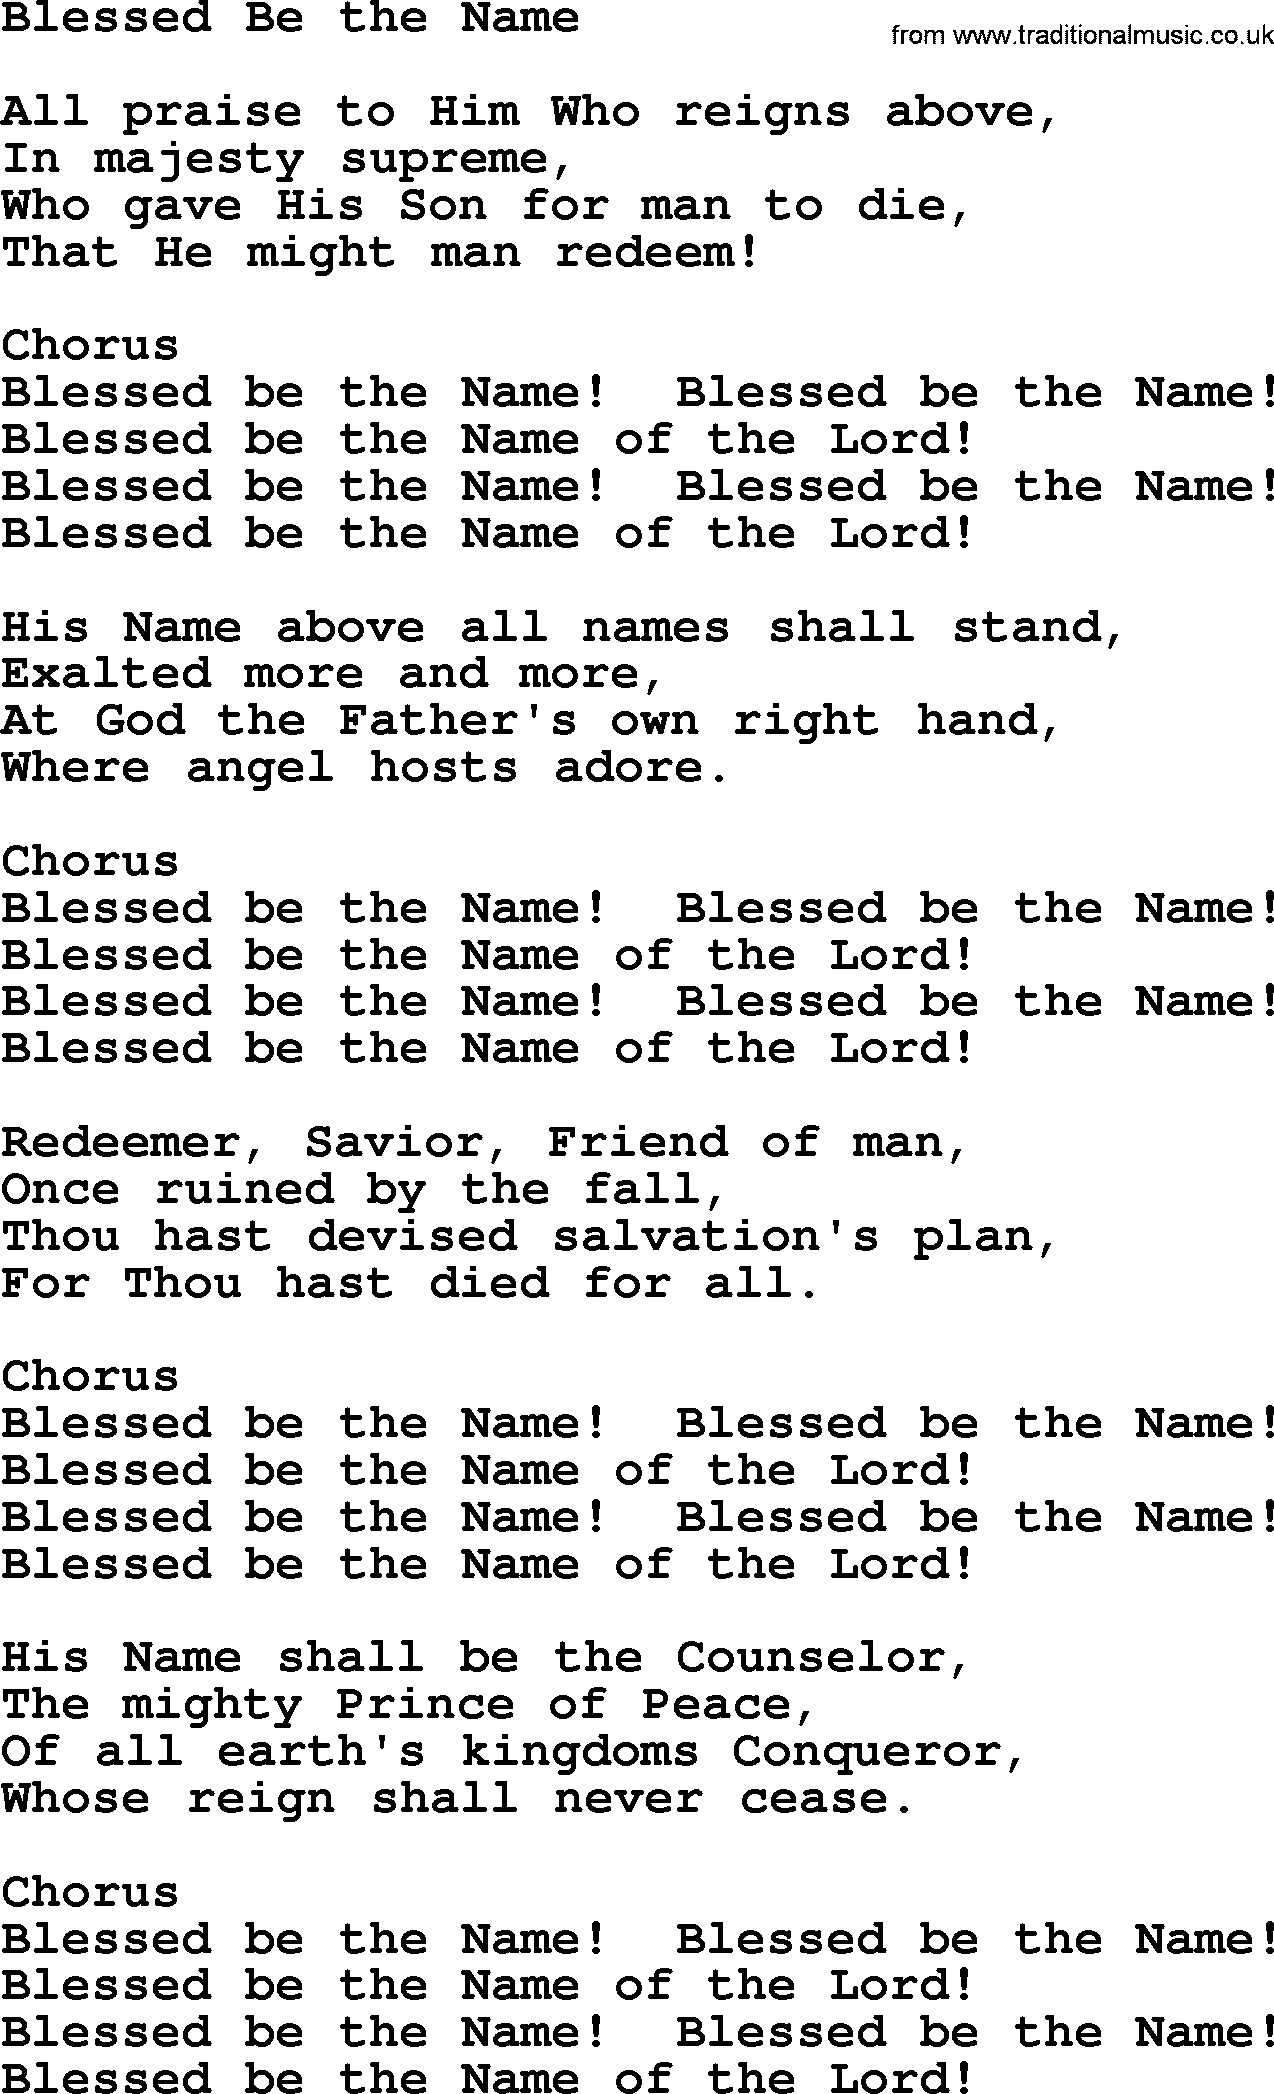 Hymn Blessed Be the Name pg 110 - YouTube